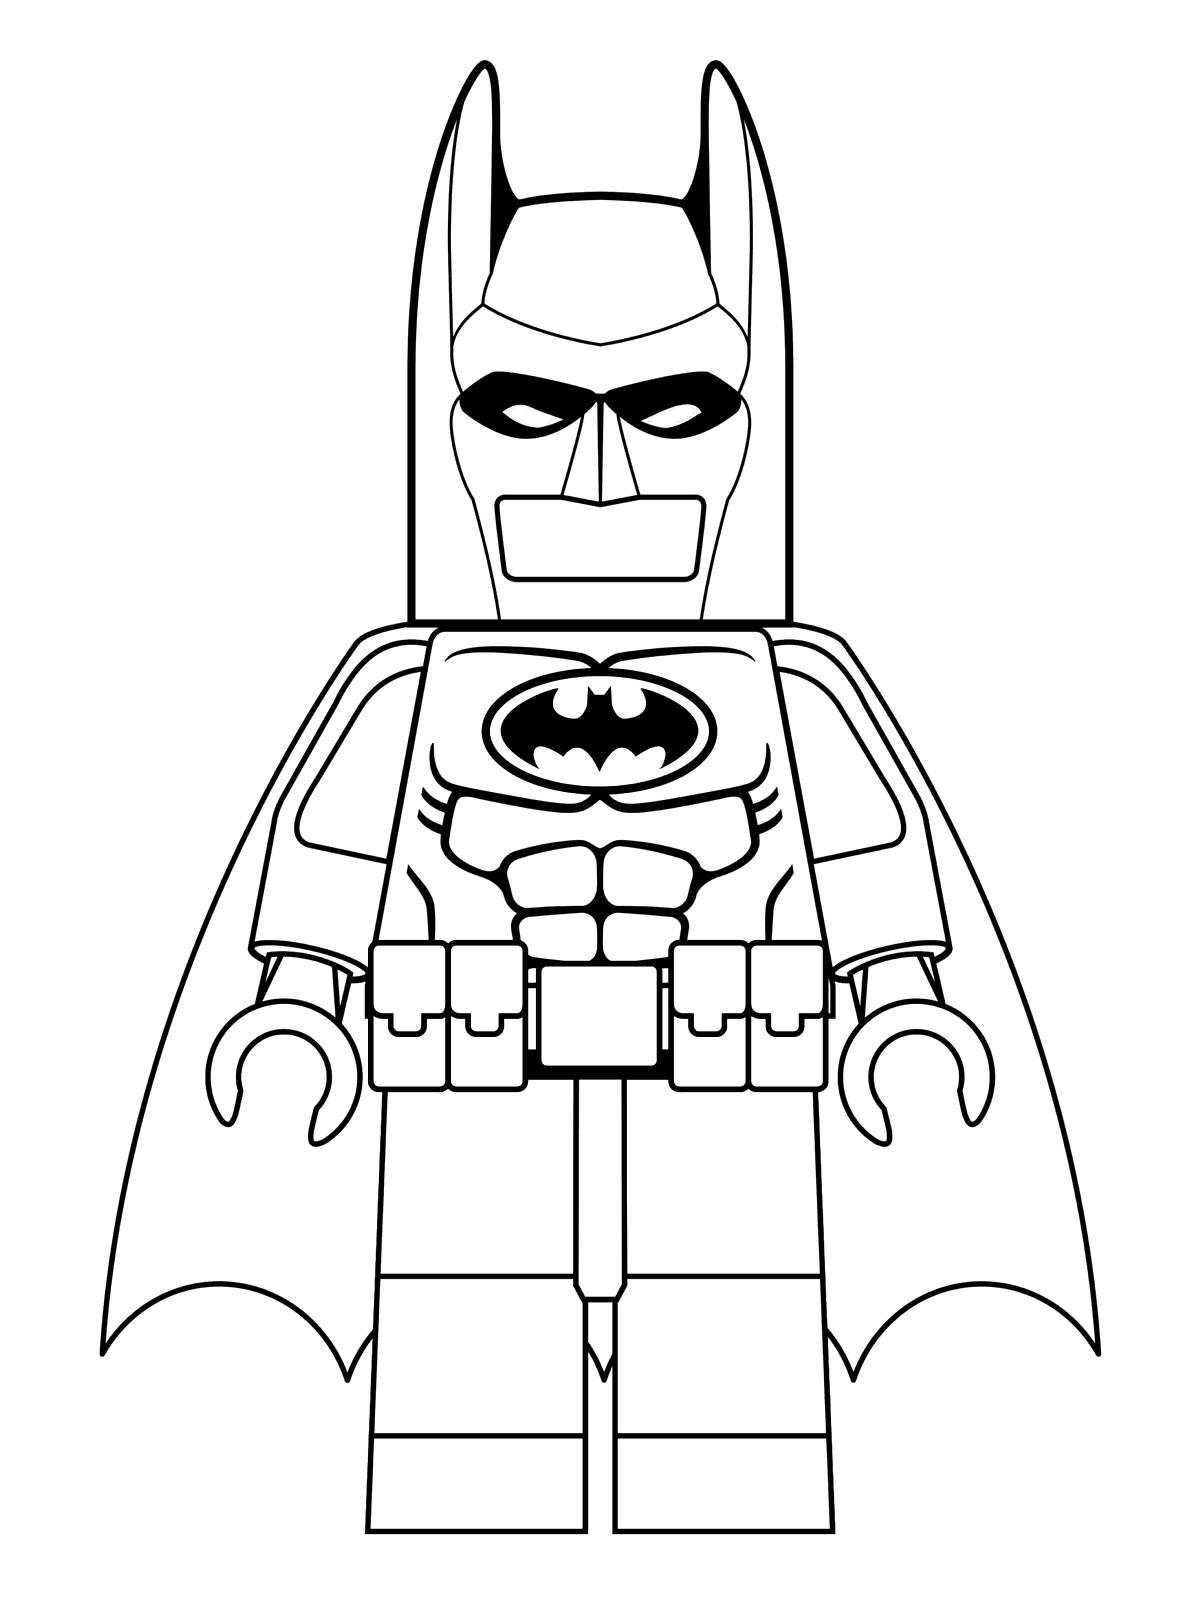 coloring page lego batman movie batman movie jonah 39 s coloring pages lego movie coloring. Black Bedroom Furniture Sets. Home Design Ideas